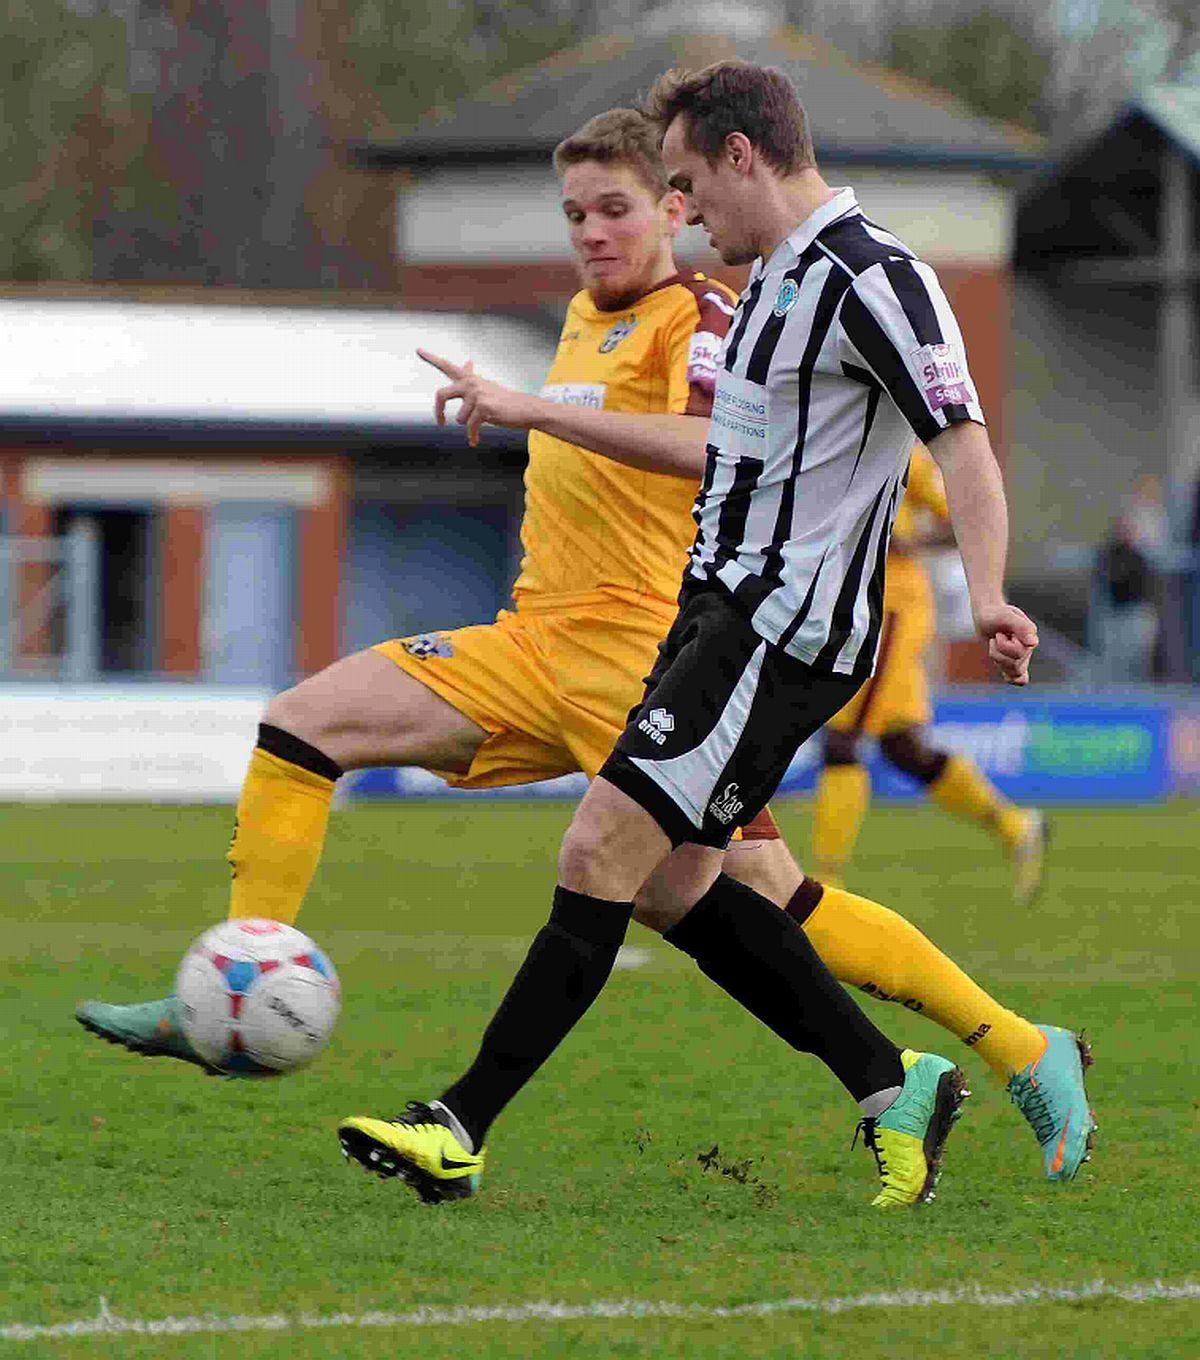 VITAL POINT: Jake Smeeton helped earn the Magpies a 0-0 draw against Sutton on Saturday